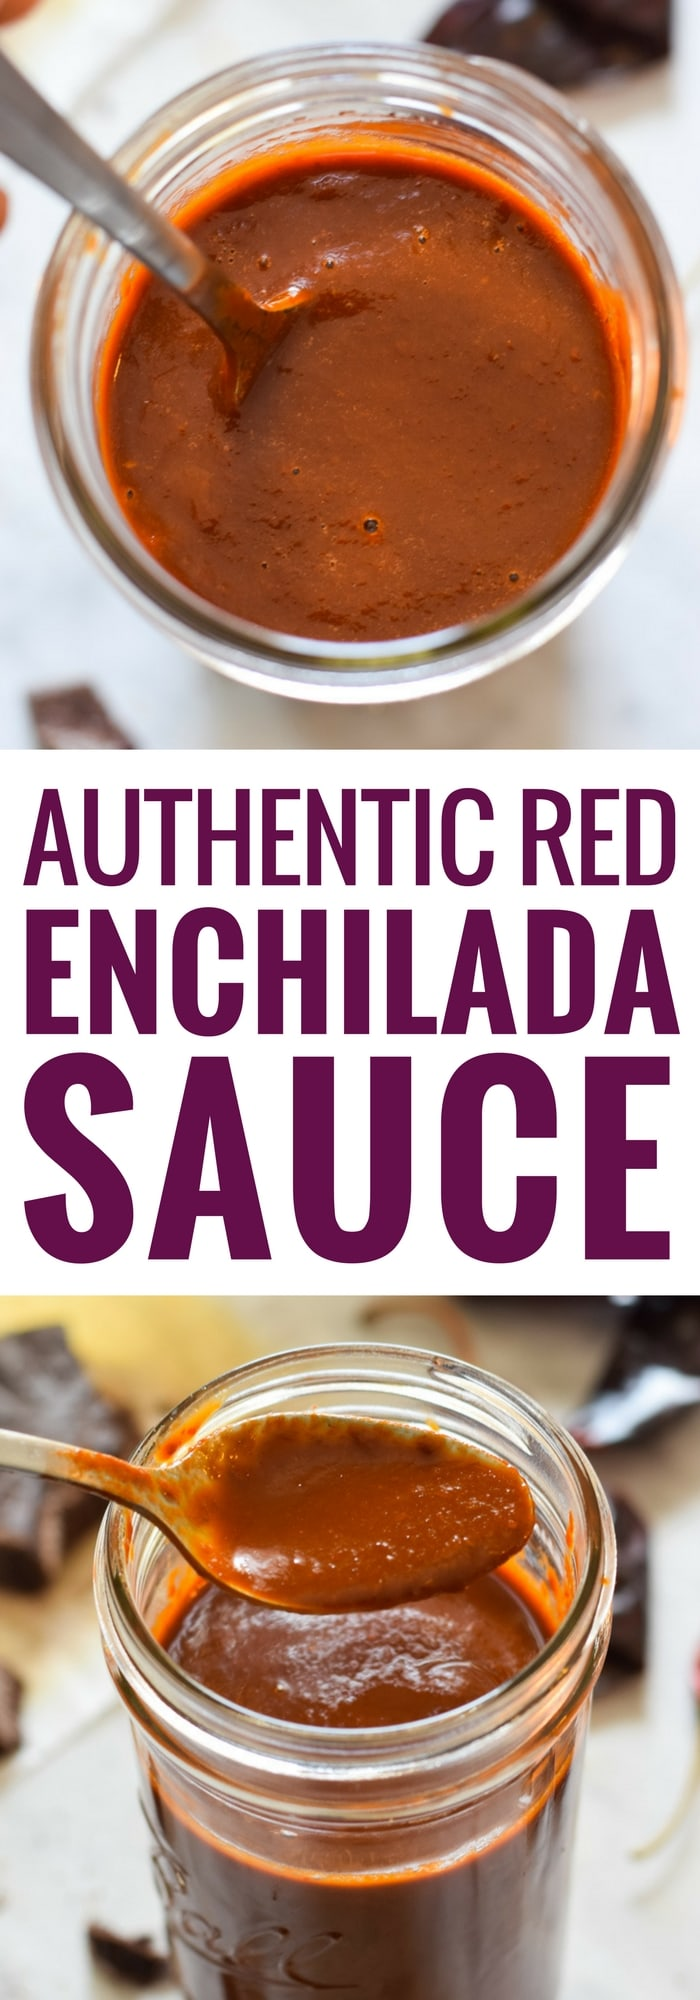 Made with dried chiles and a piece of Mexican chocolate, this Red Enchilada Sauce recipe is perfect in many dishes including enchiladas! (gluten free, vegetarian) #enchiladasauce #mexican #enchiladas